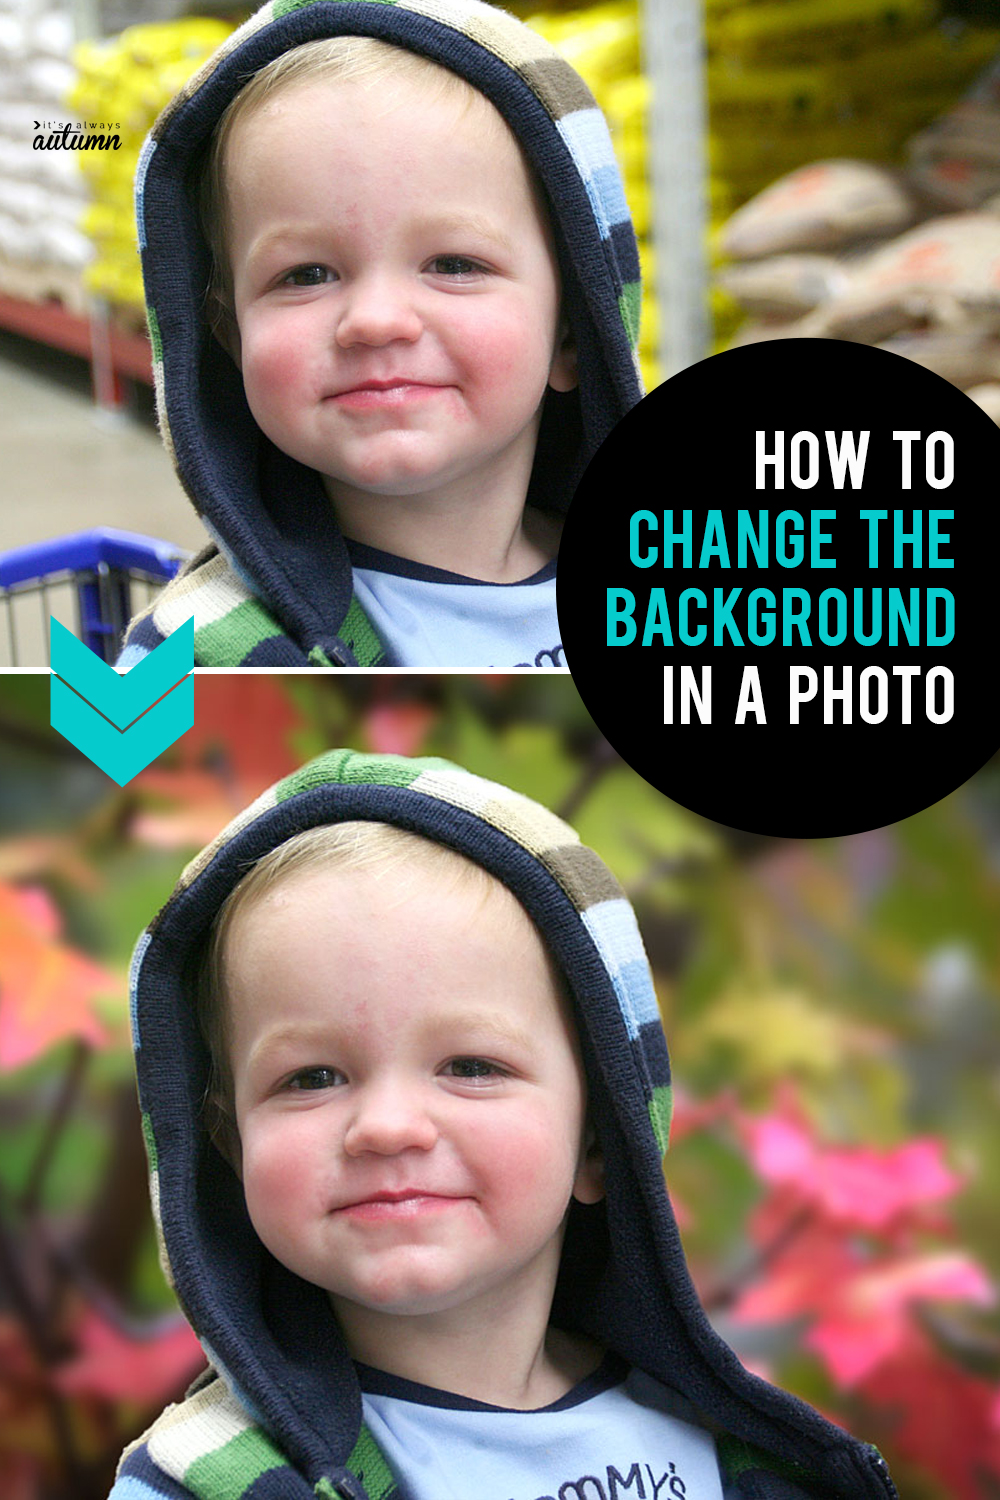 Learn how easy it is to change the background in a photo with just a few clicks!